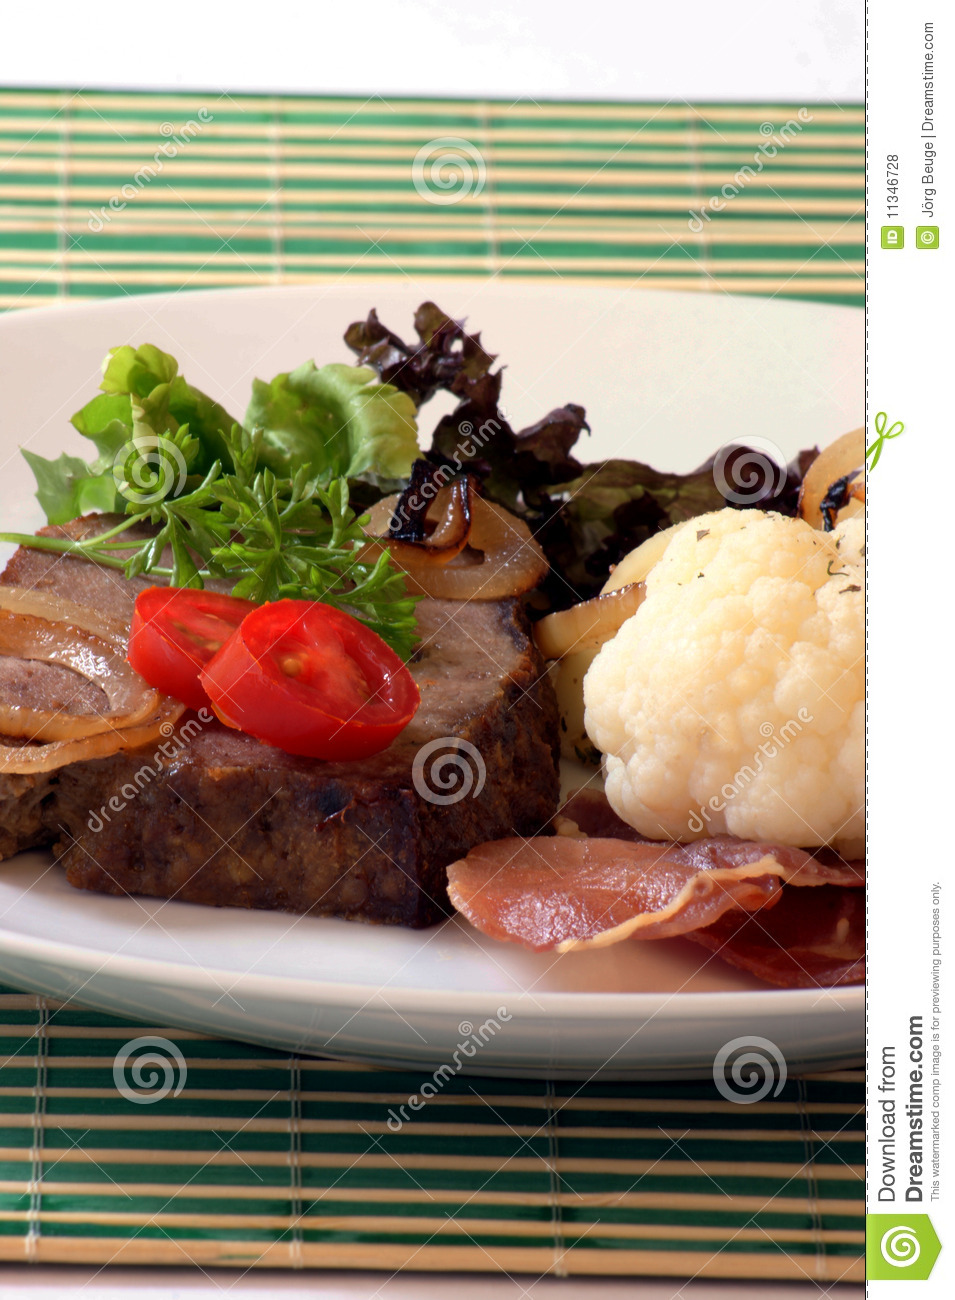 Sliced Meat Loaf With Vegetable On A Plate Royalty Free Stock Photos